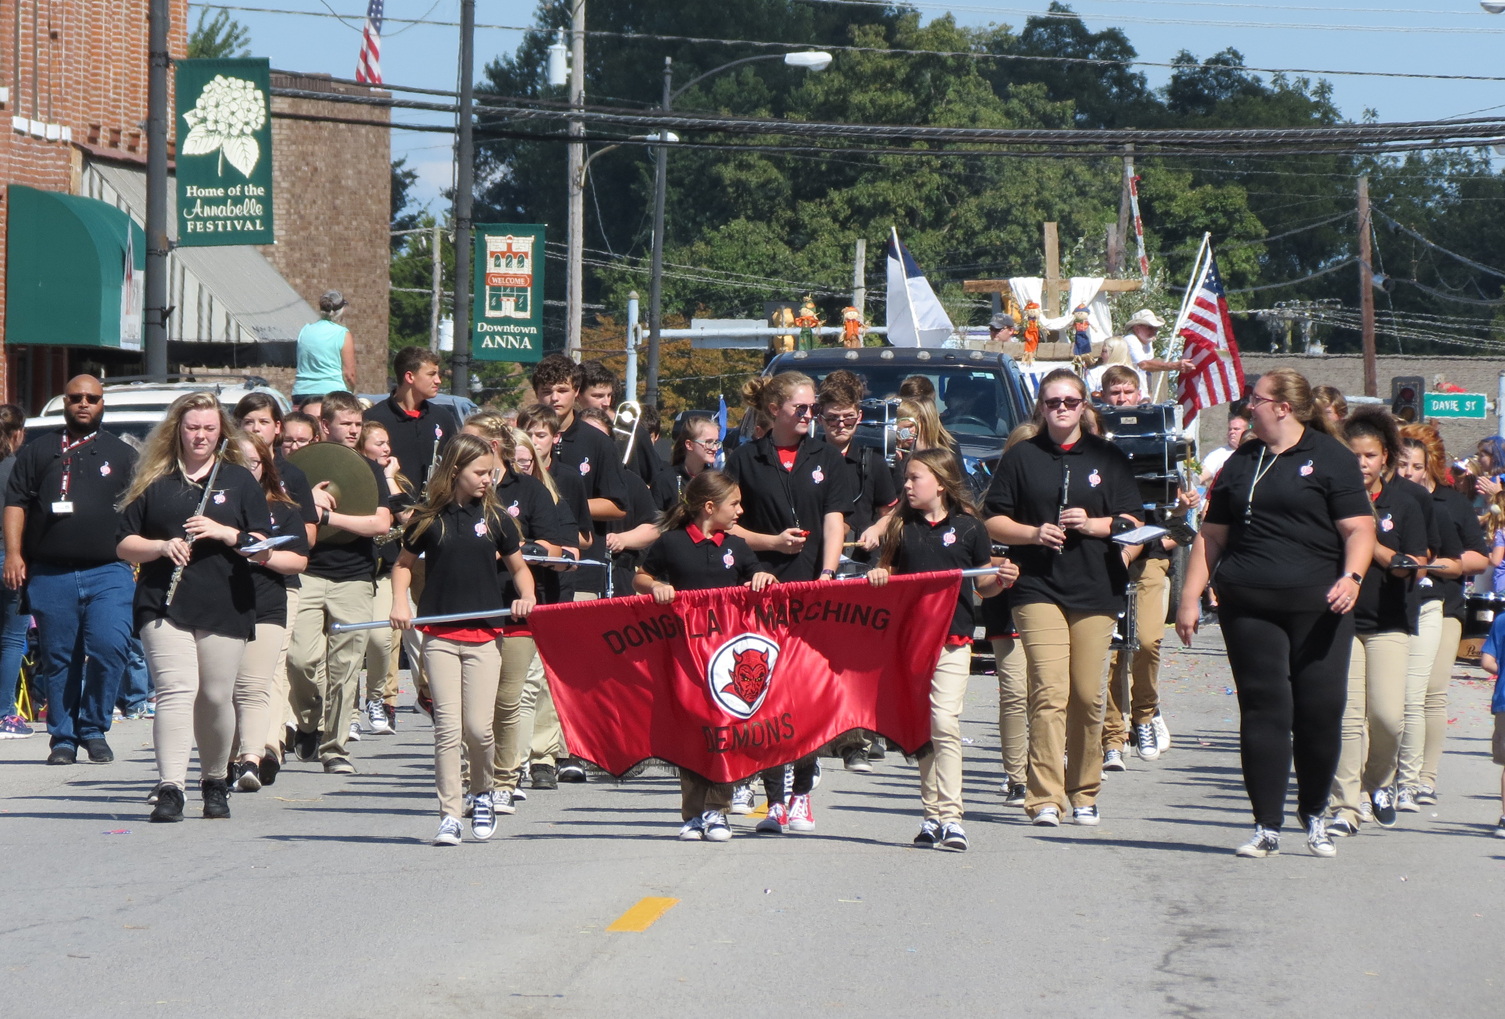 Dongola School marching band